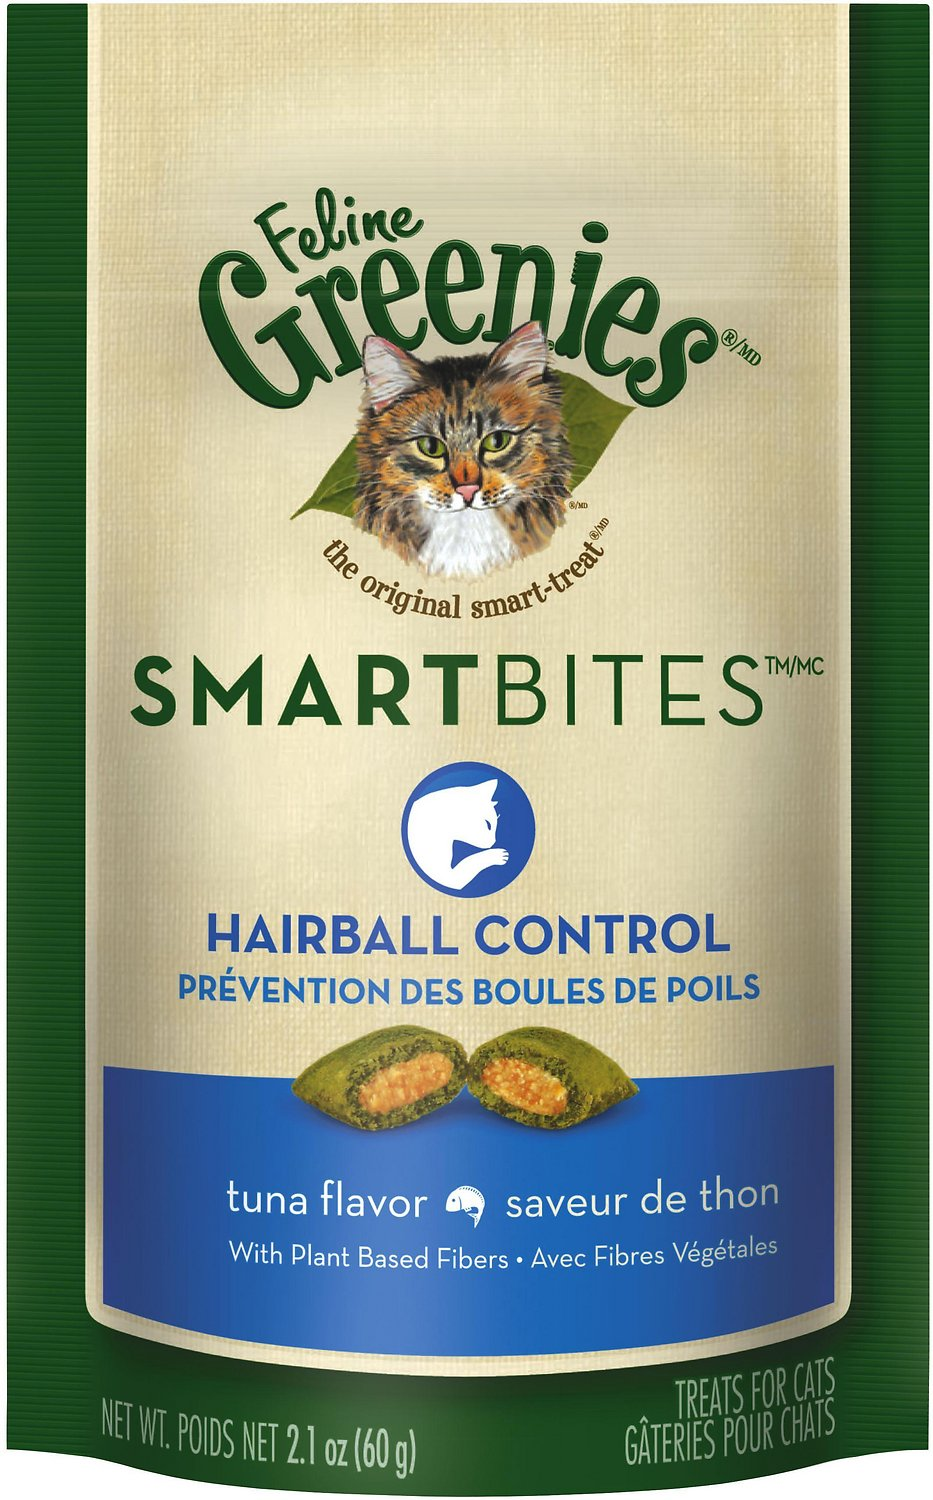 Greenies Smartbites Hairball Control Tuna Cat Treats 2.1oz